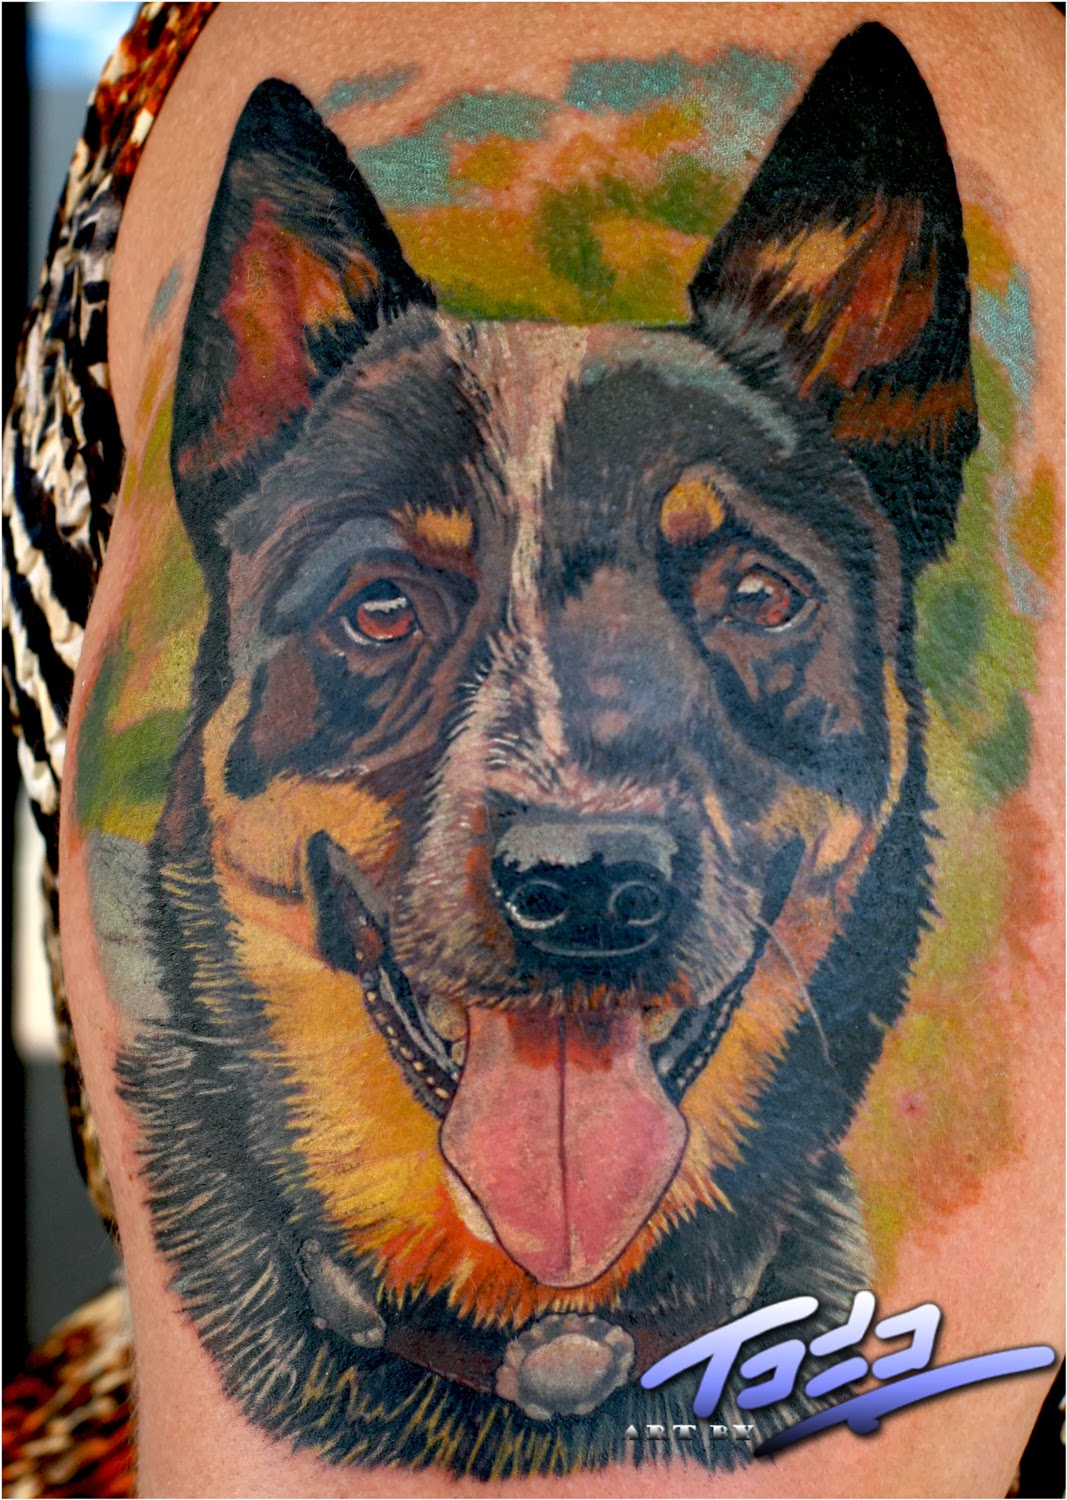 Tattooz Designs: Best Photo-Realistic Tattoos Designs